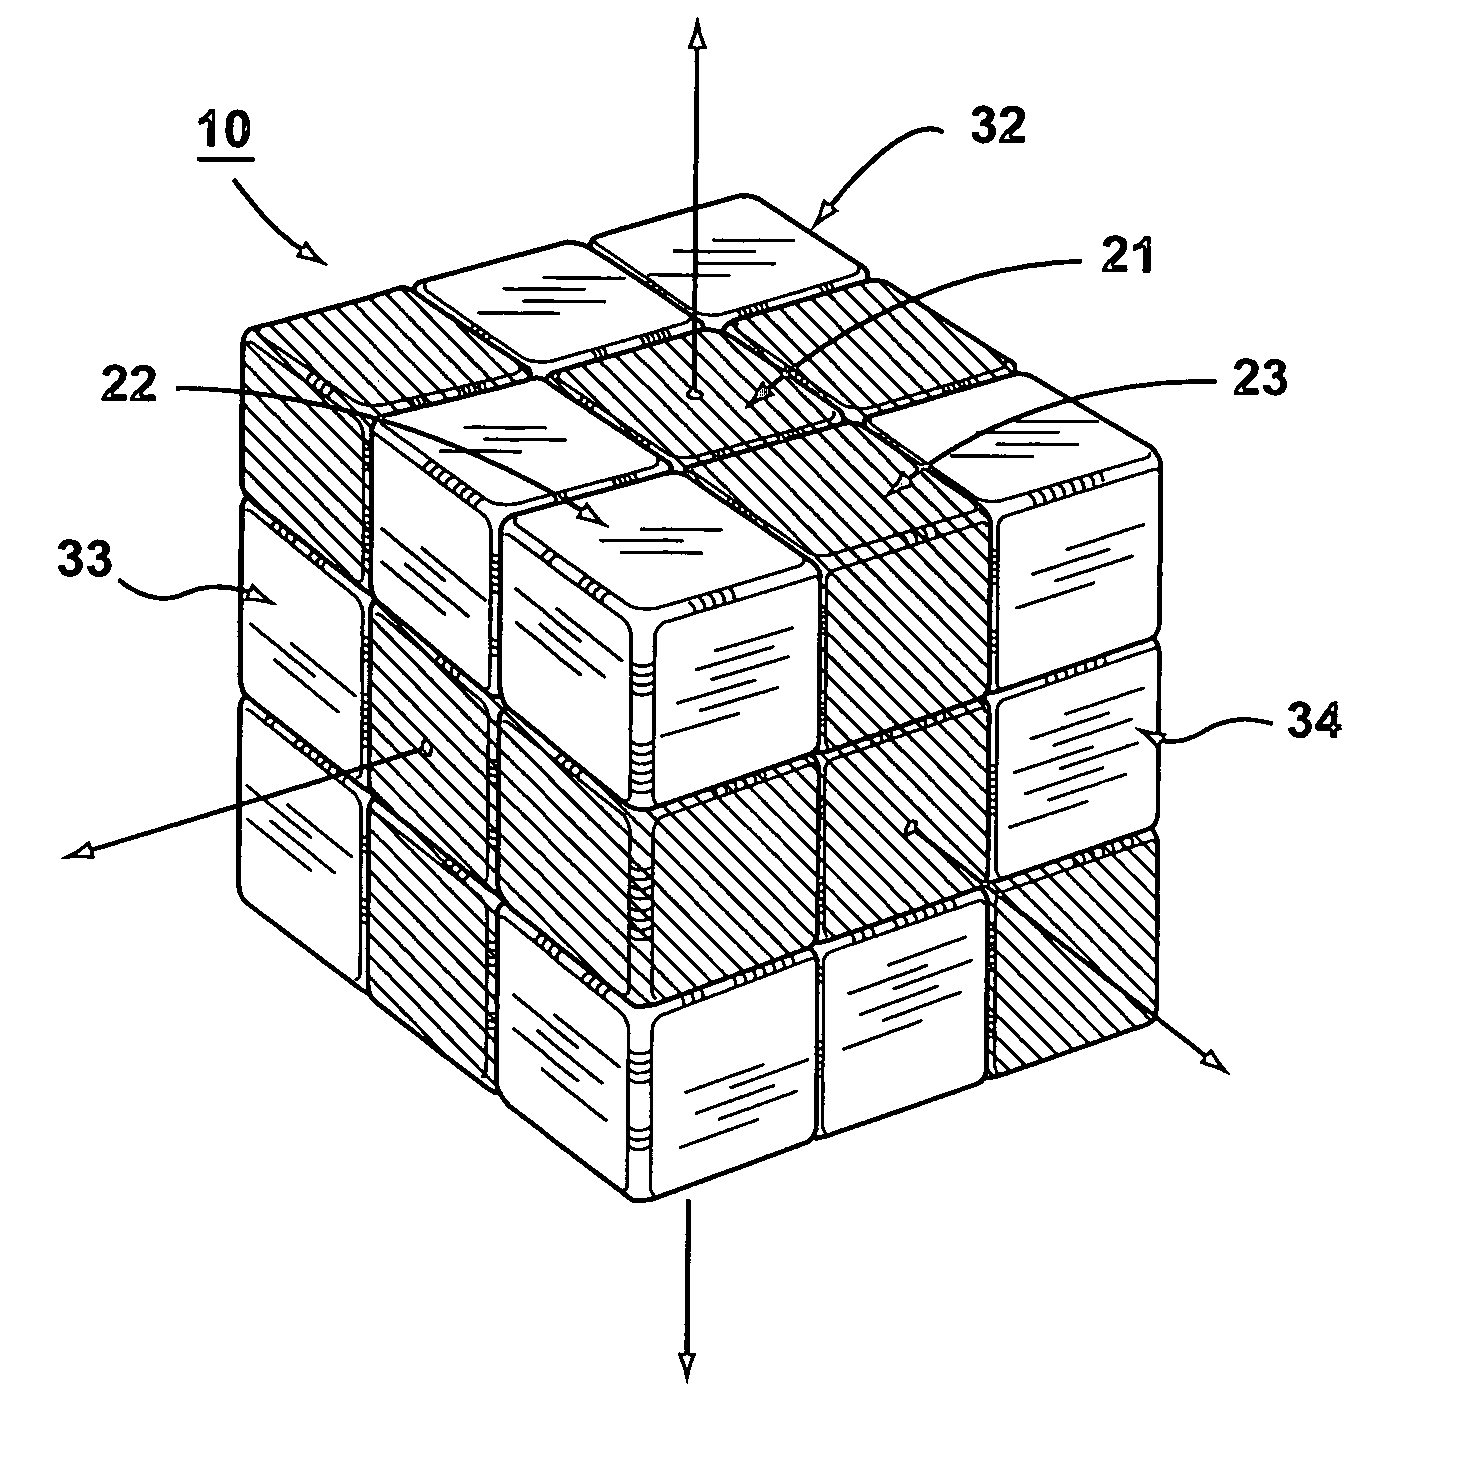 Rubix cube patentdrawing patent drawing invention patent rubix cube patentdrawing patent drawing invention malvernweather Choice Image